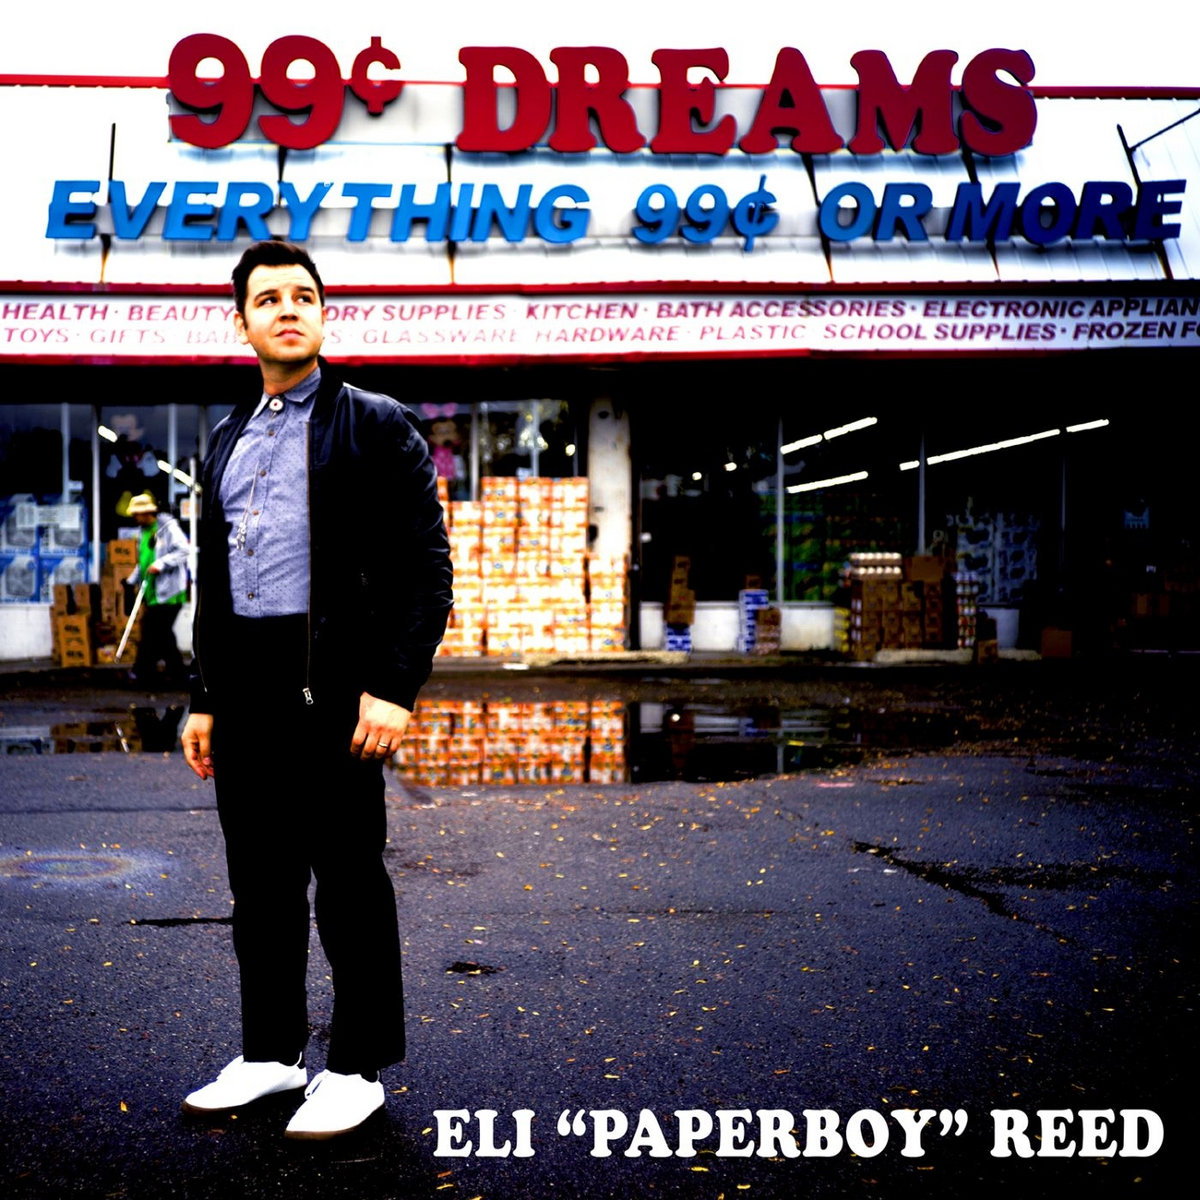 Image result for eli paperboy reed 99 cent dreams""